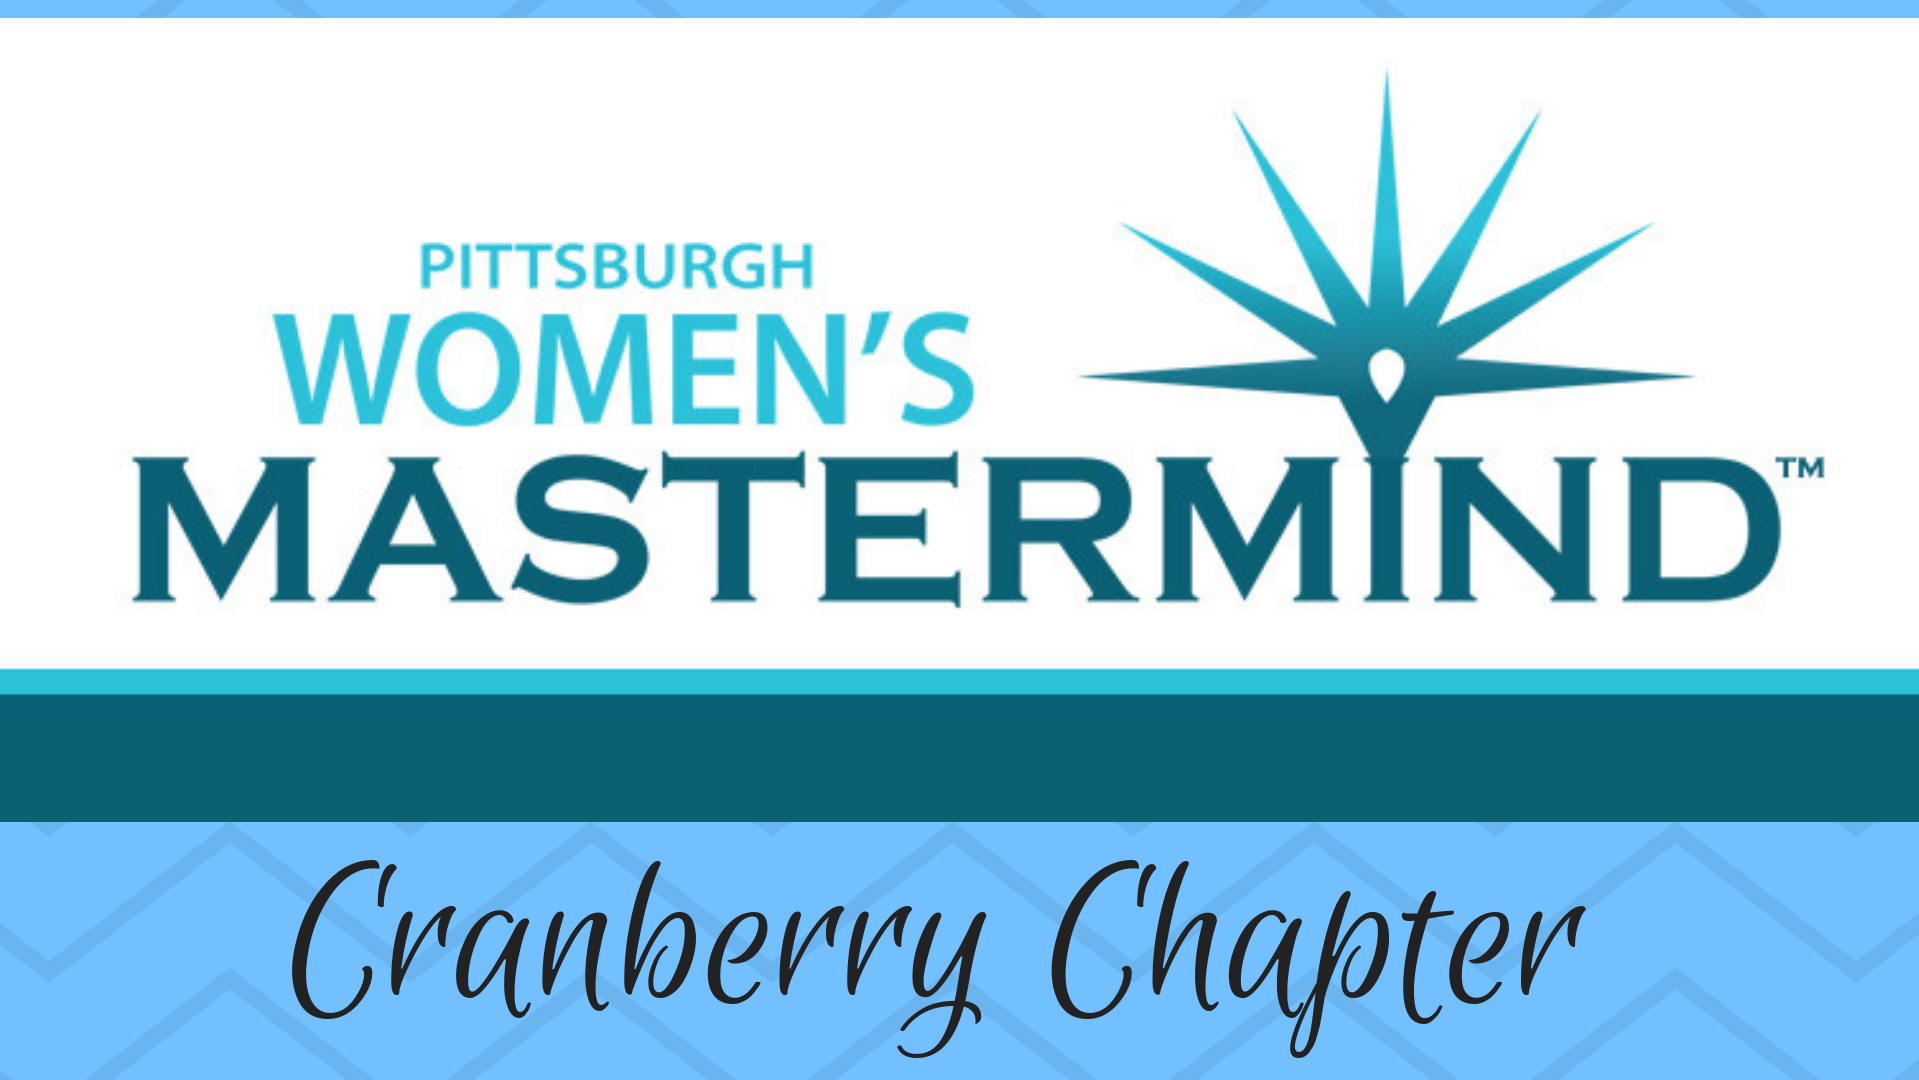 Pittsburgh Women's Mastermind for Entrepreneurs: Cranberry